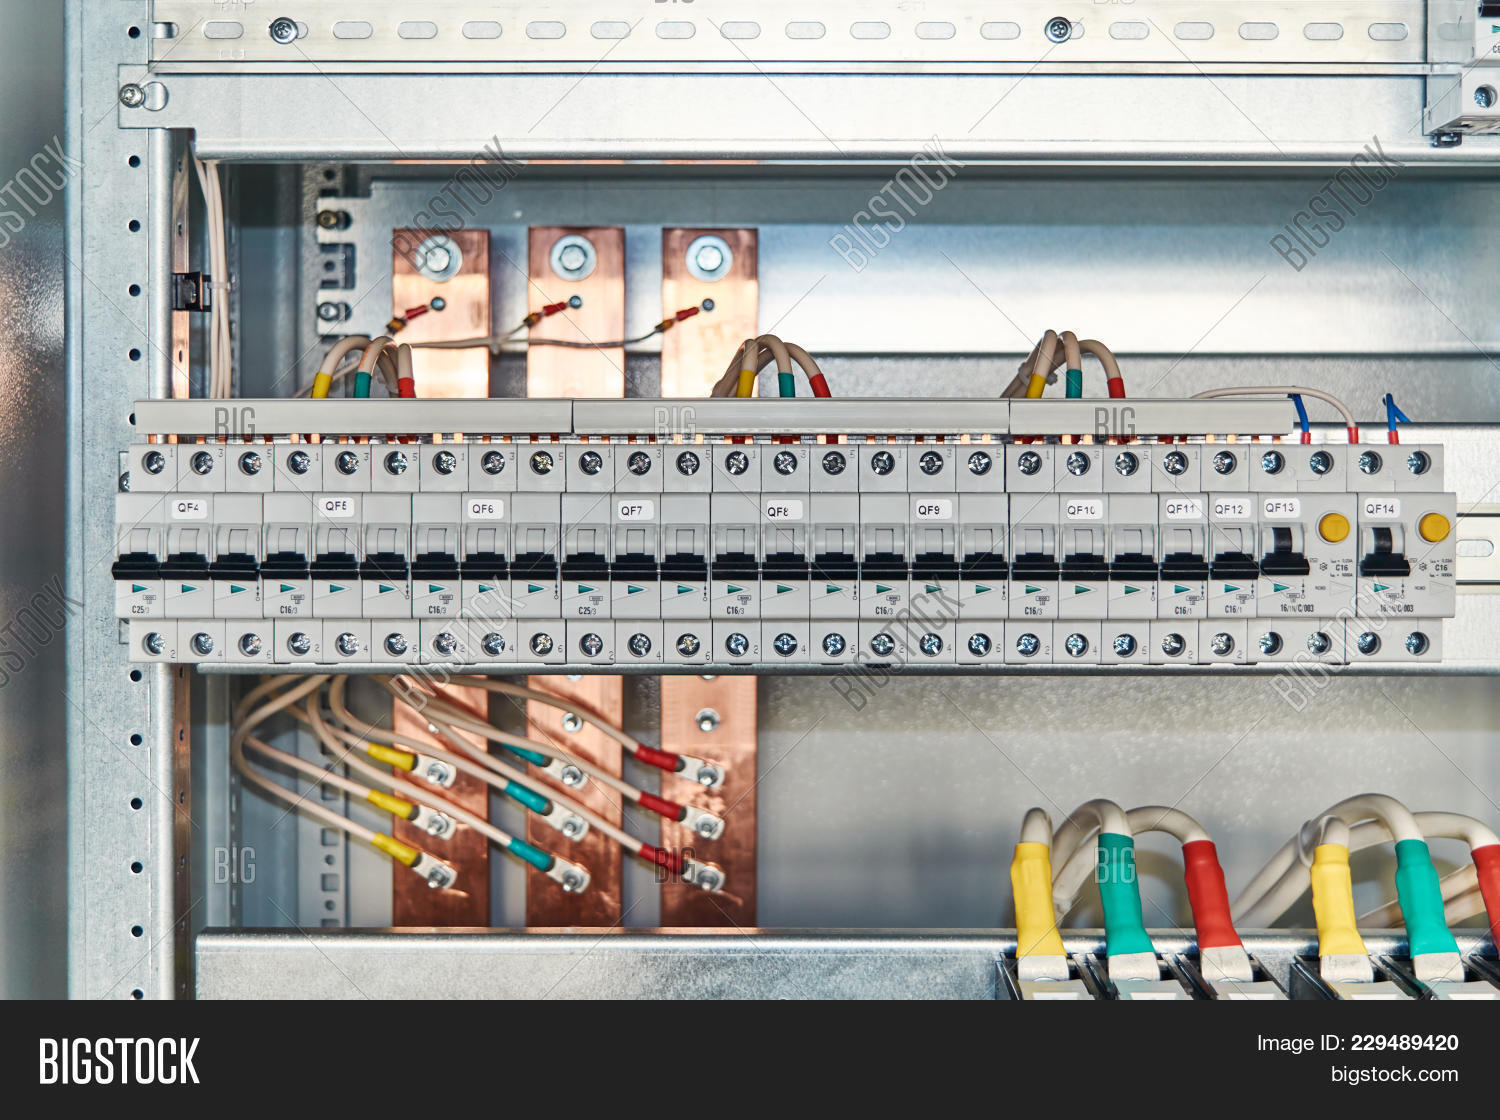 Modular Electrical Image Photo Free Trial Bigstock Circuit Breakers And Differential Switches In Cabinet Wire